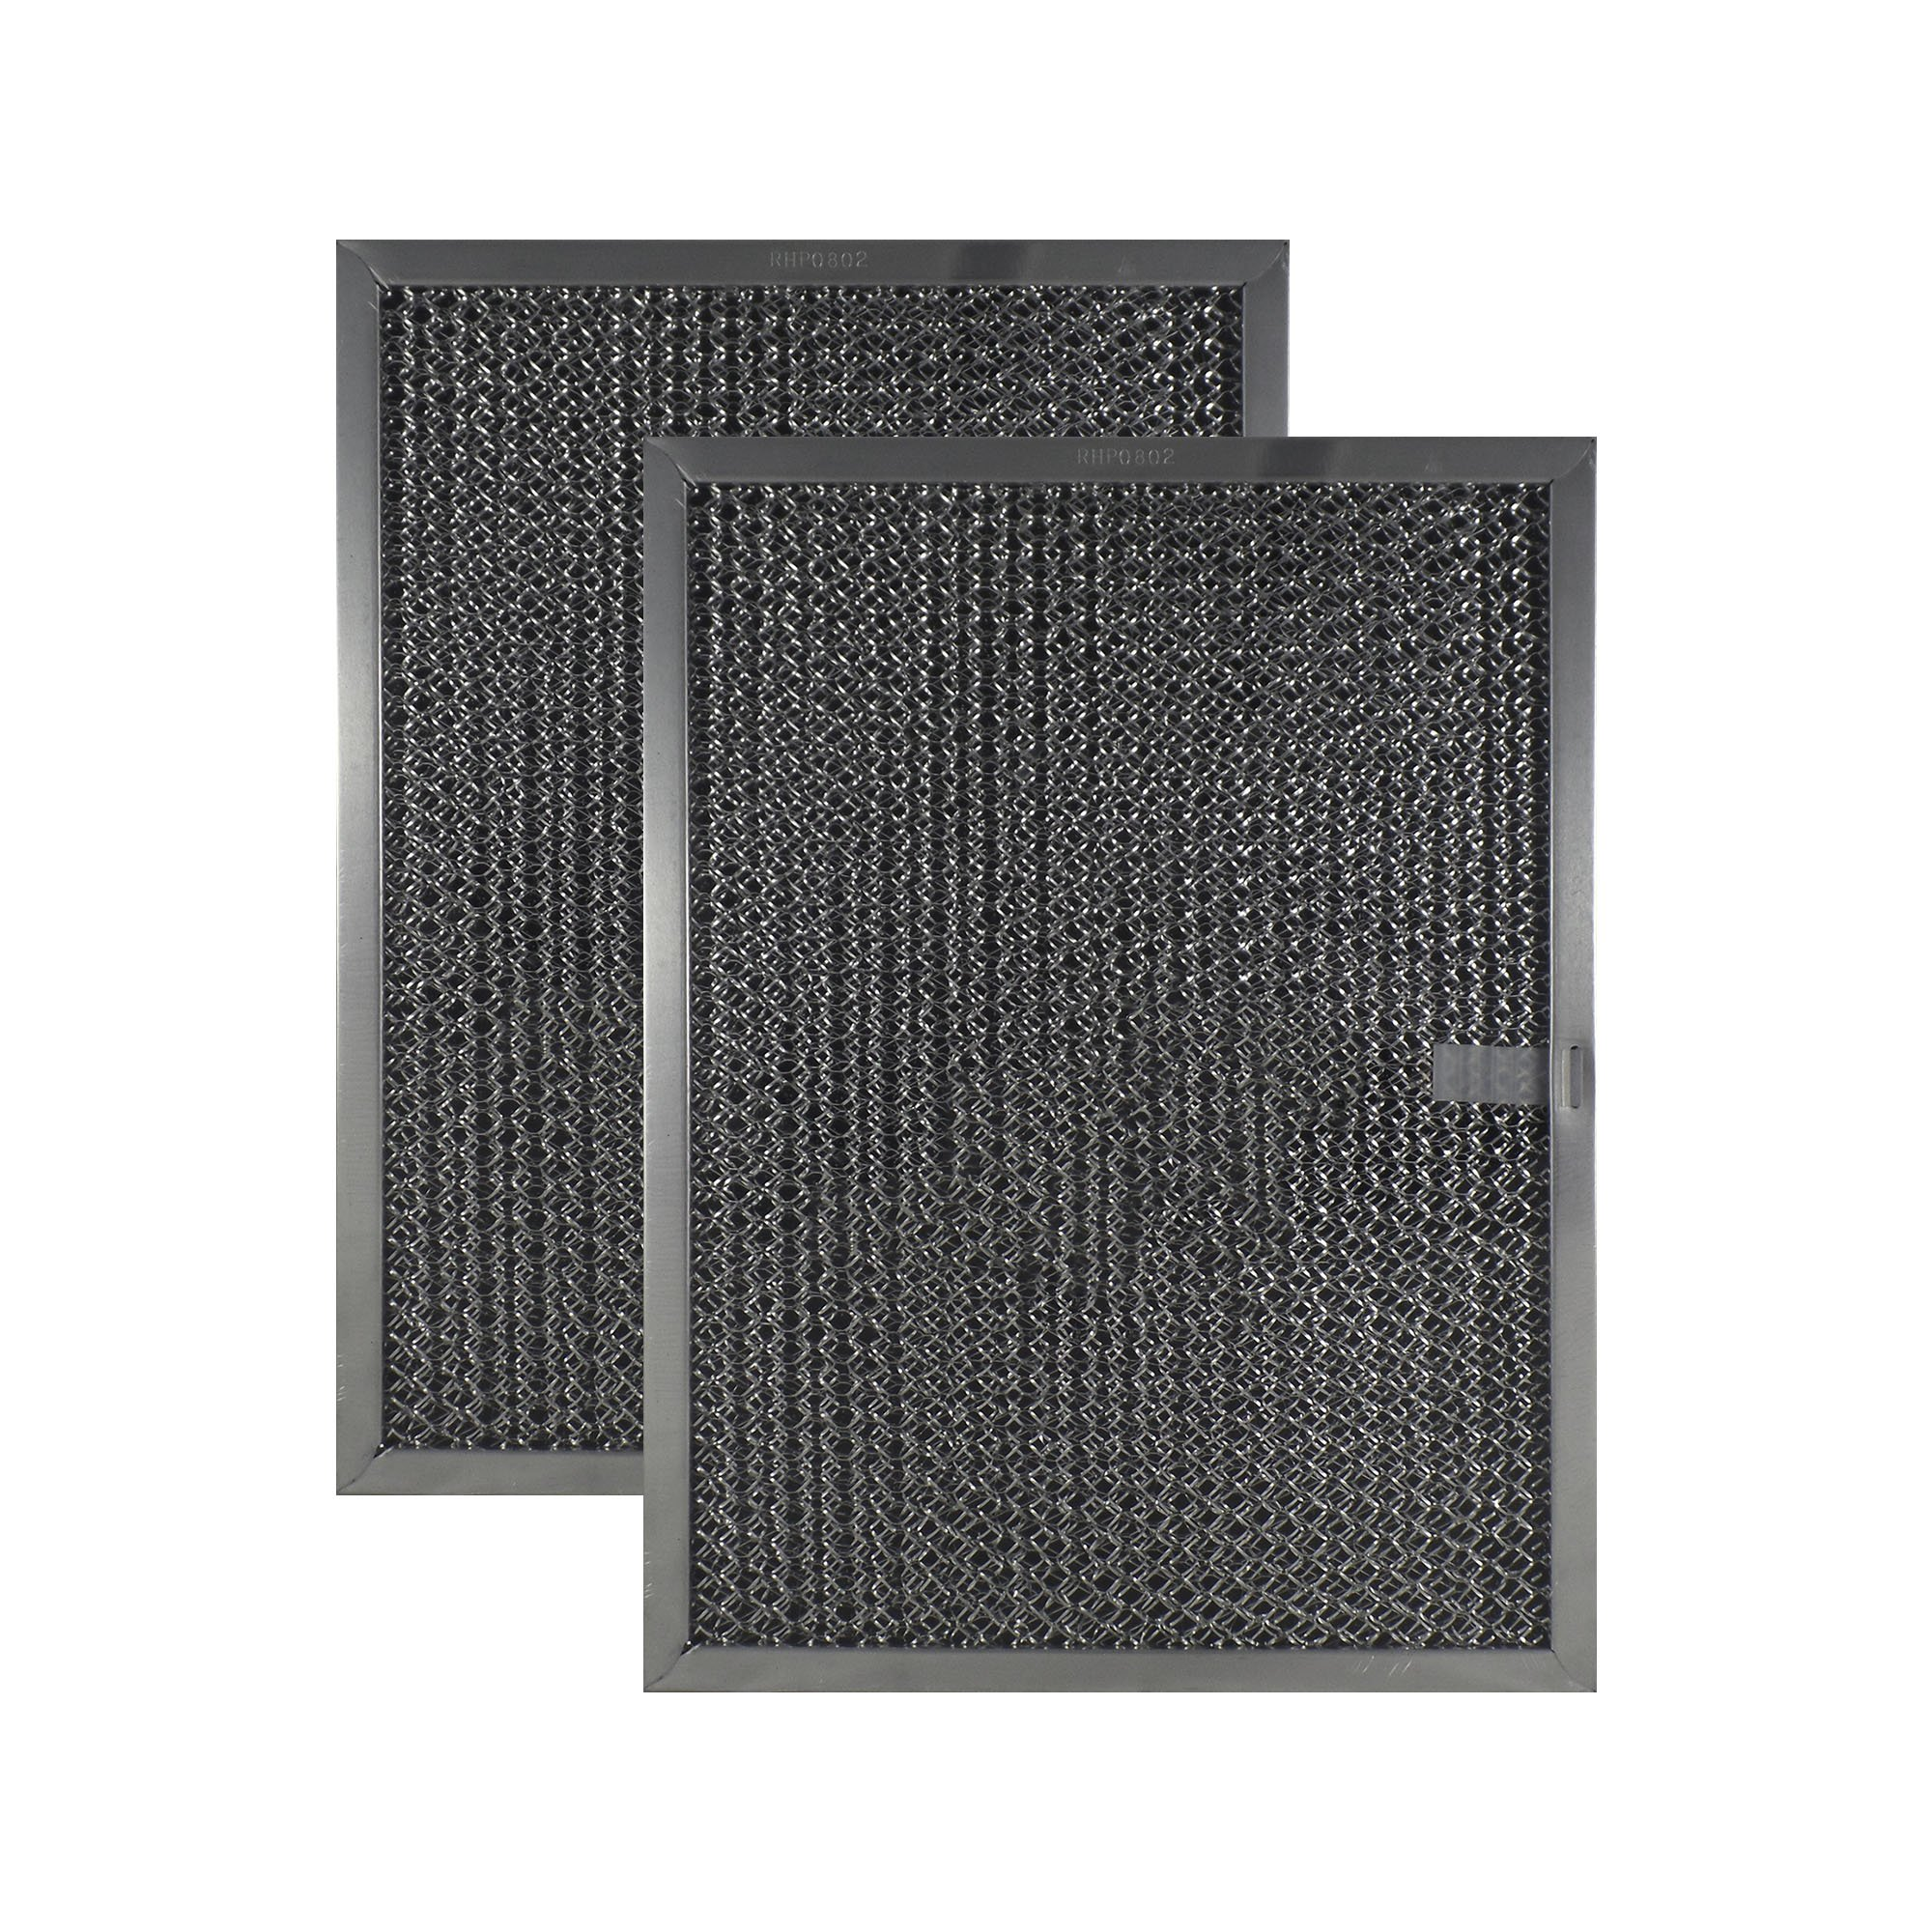 2 PACK Air Filter Factory Compatible Replacement For 8-1/2 x 11-1/4 x 3/8 Range Hood Aluminum Charcoal Combo Filters AFF105-CMB